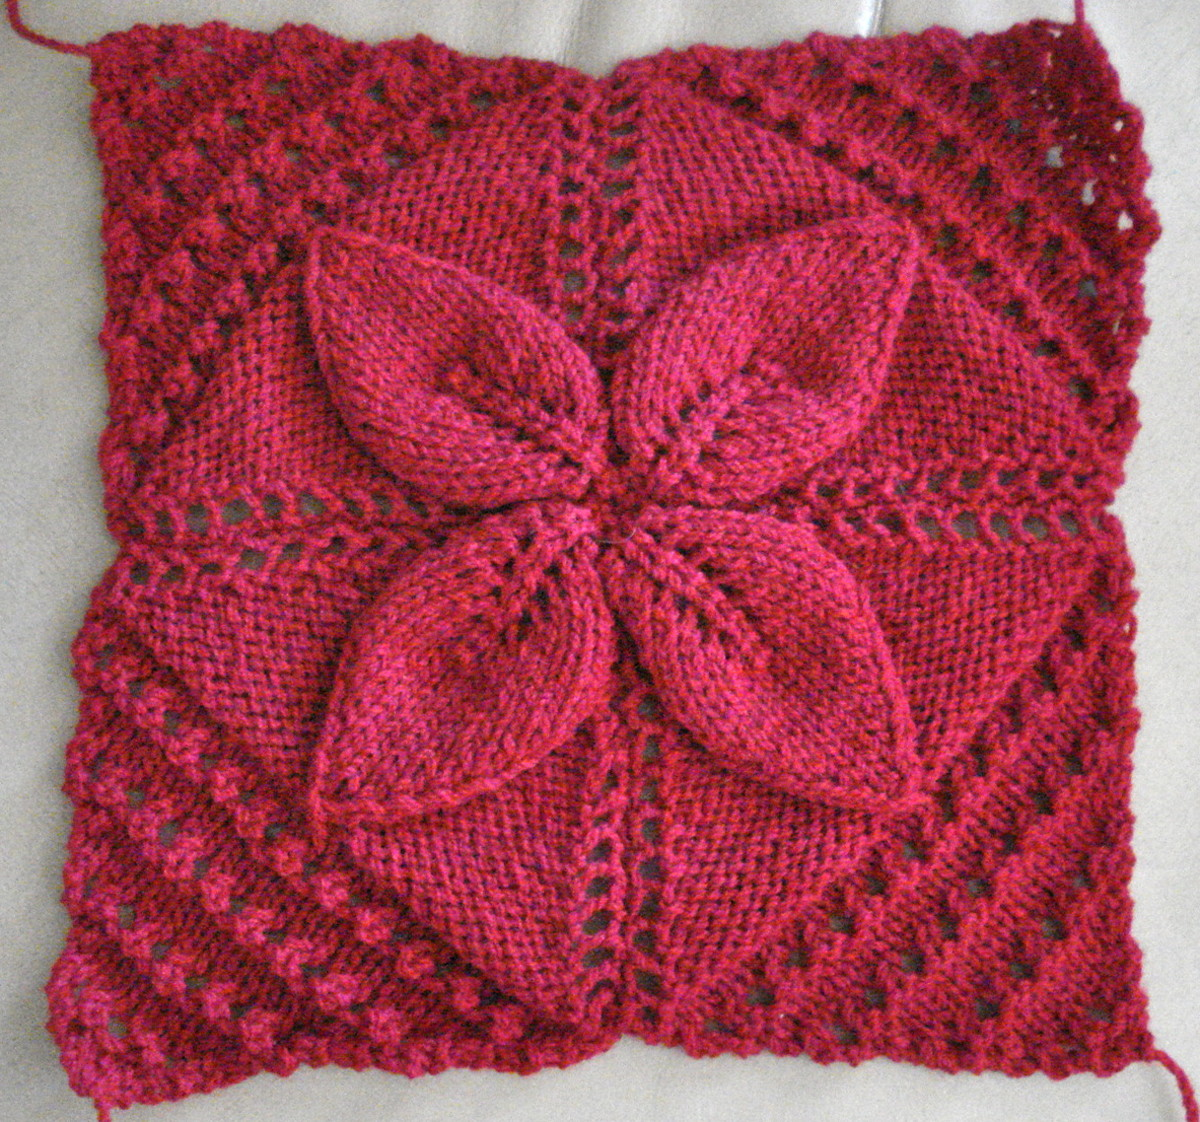 Double Leaf Knitting Pattern : Knitting Project: a Cosy Rug FeltMagnet